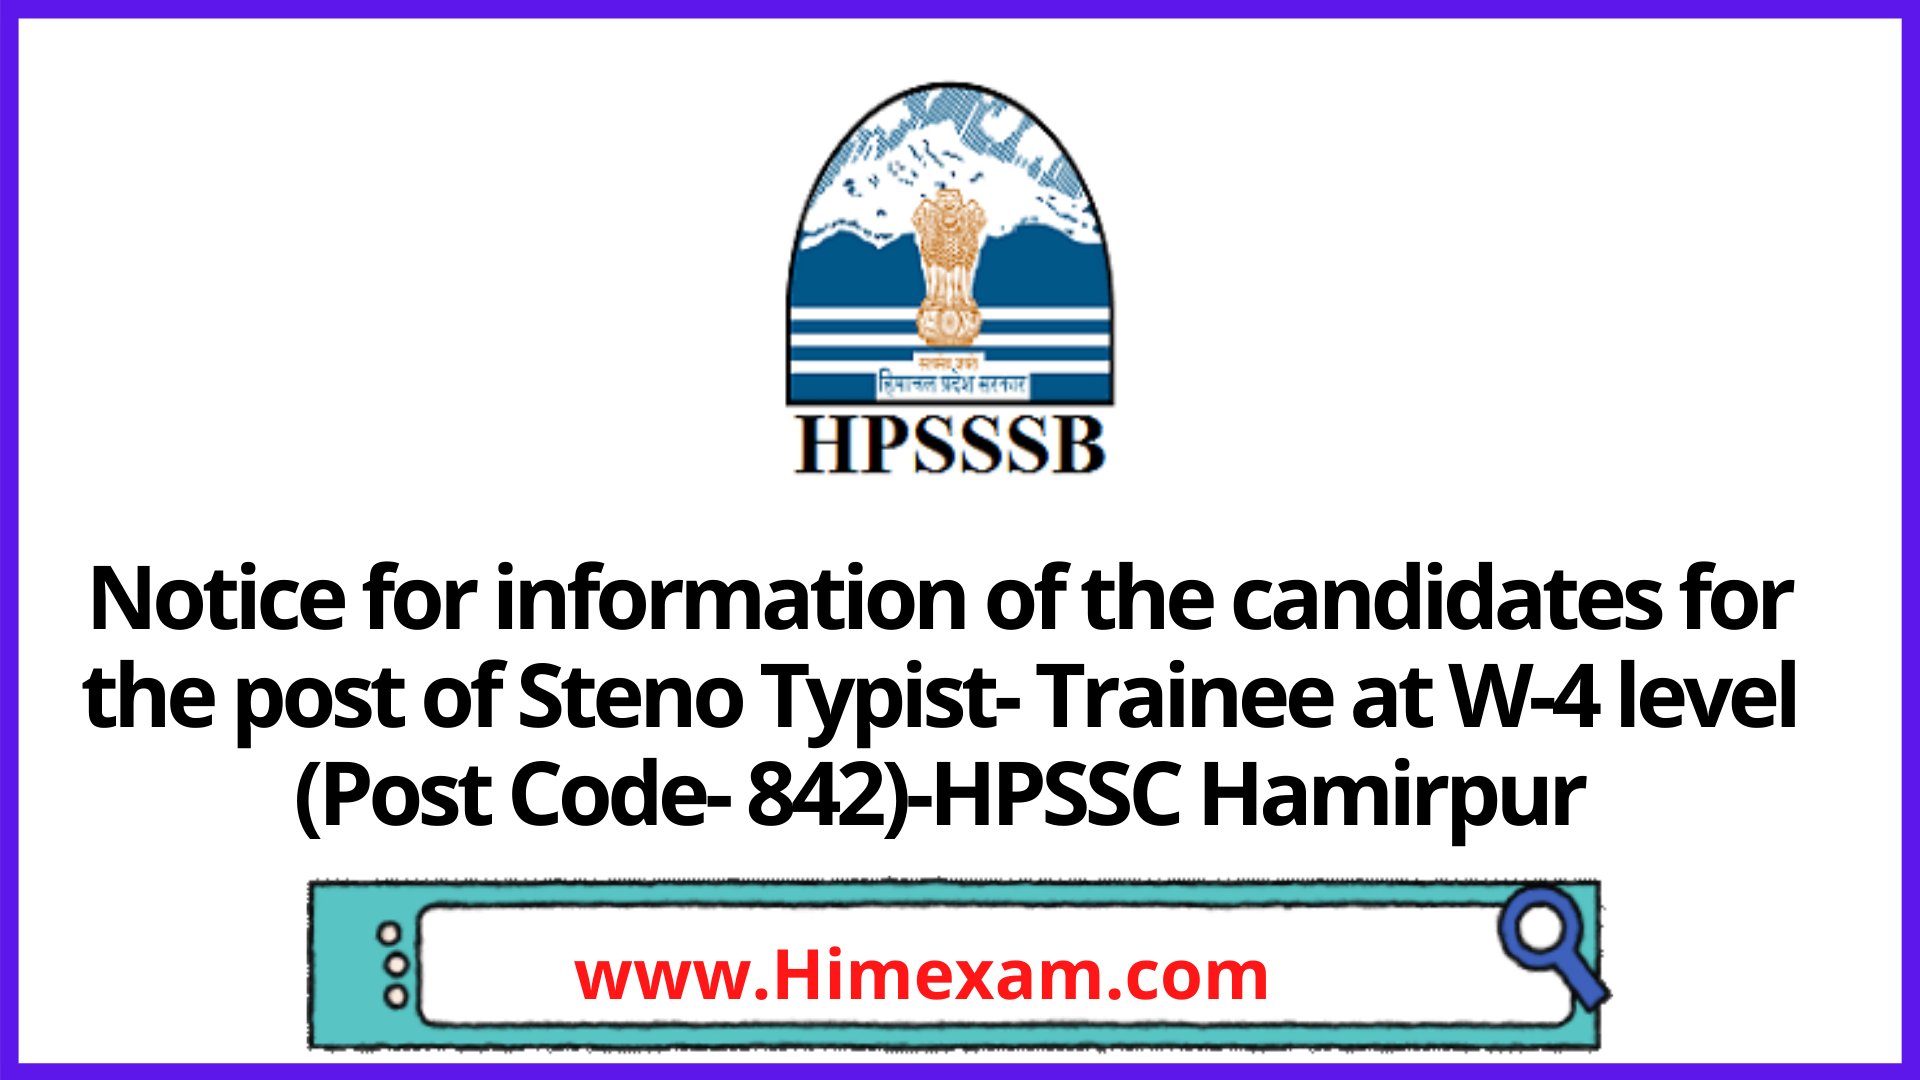 Notice for information of the candidates for the post of Steno Typist- Trainee at W-4 level (Post Code- 842)-HPSSC Hamirpur